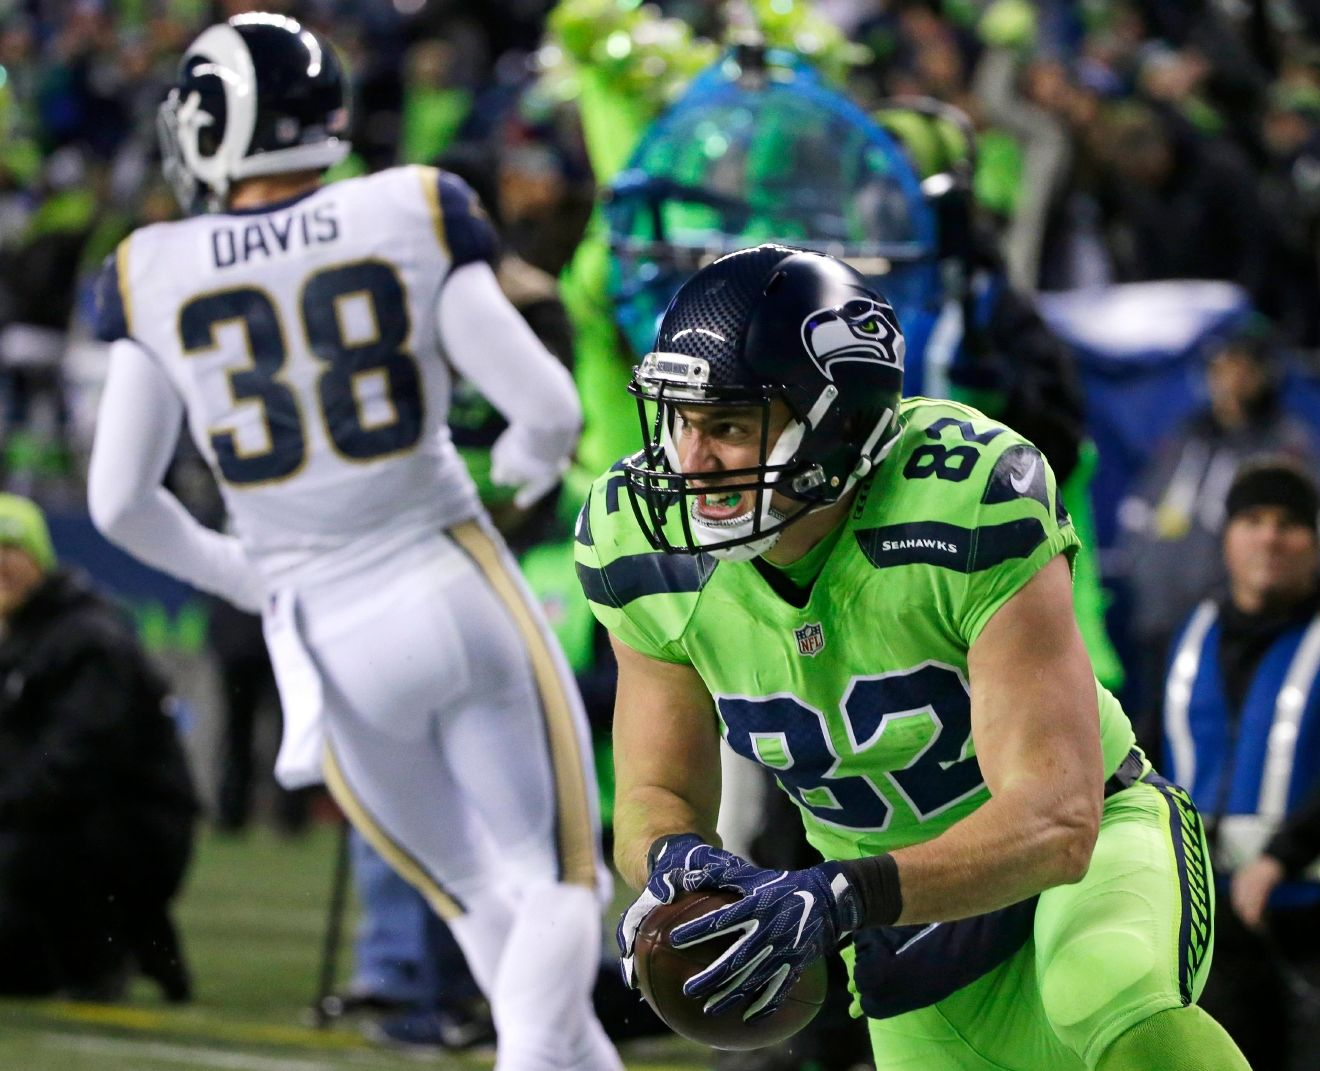 Seattle Seahawks tight end Luke Willson, right, reacts after scoring a touchdown against the Los Angeles Rams in the first half of an NFL football game, Thursday, Dec. 15, 2016, in Seattle. (AP Photo/Elaine Thompson)